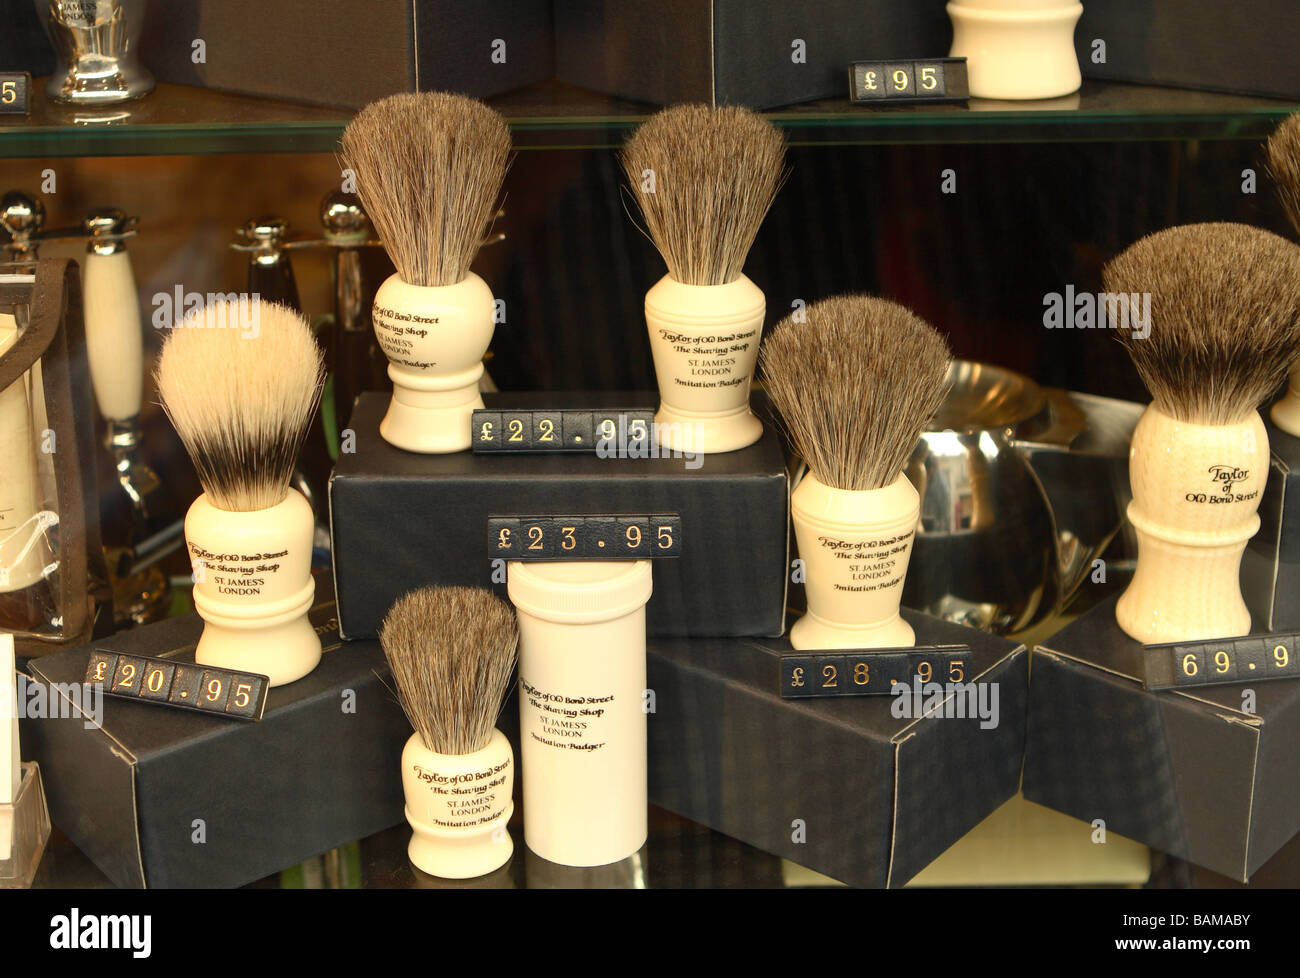 Shaving brushes for sale in window display of Taylor of Old Bond Street store shop in Jermyn Street London - Stock Image